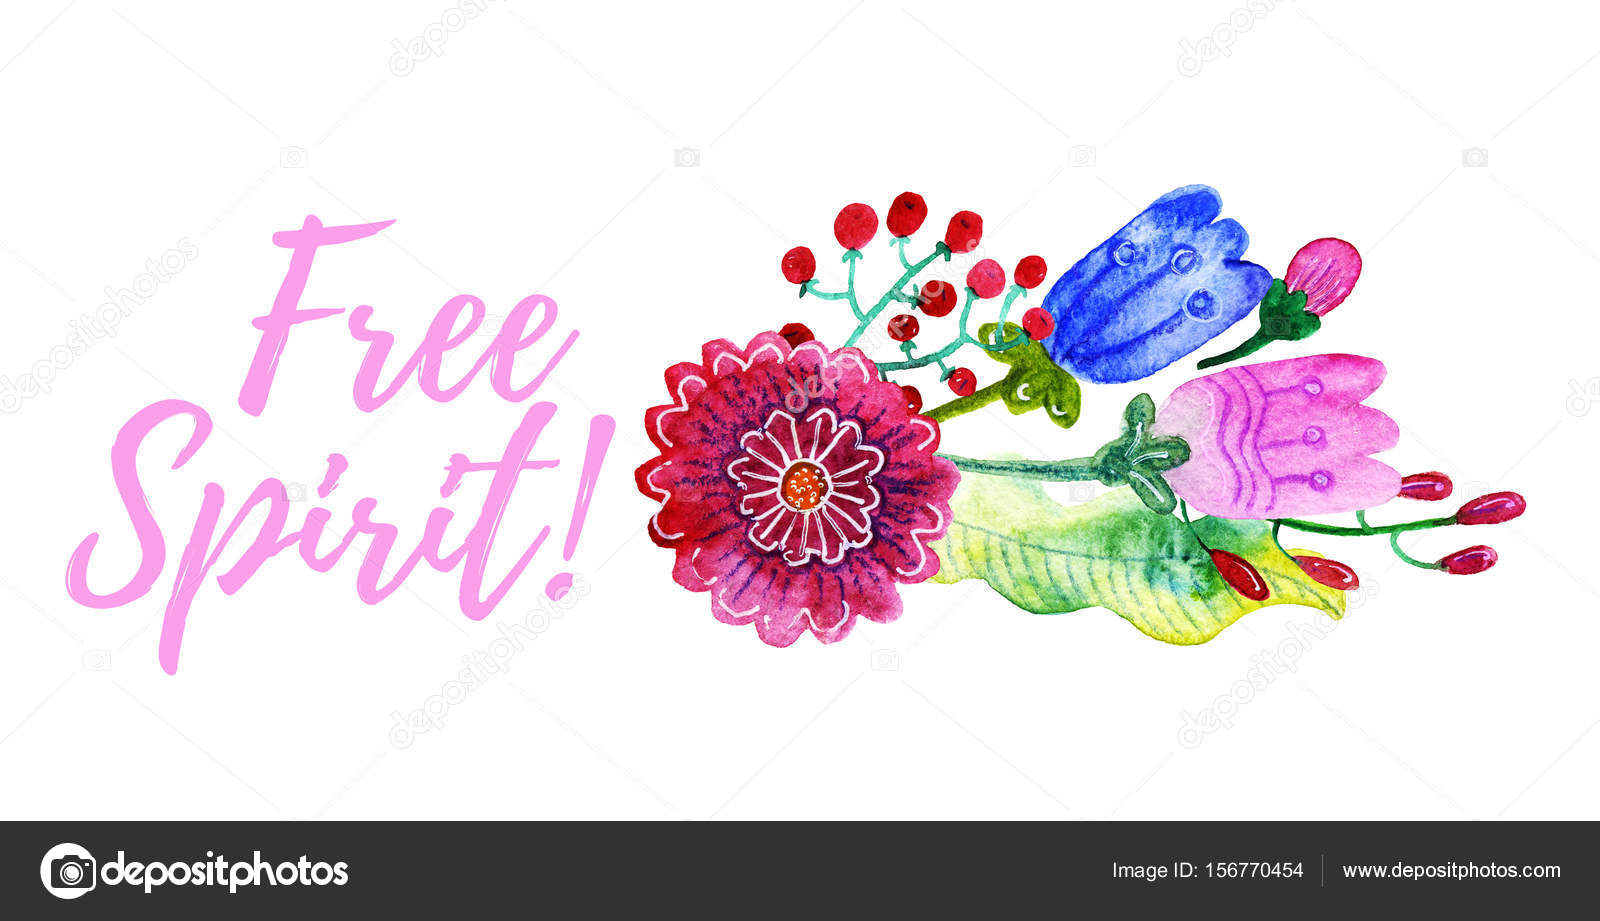 Watercolor gentle bouquet of flowers stock photo belopoppa lettering free spirit watercolor gentle bouquet of flowers isolated on white background banner print for t shirts pillows postcards photo by belopoppa izmirmasajfo